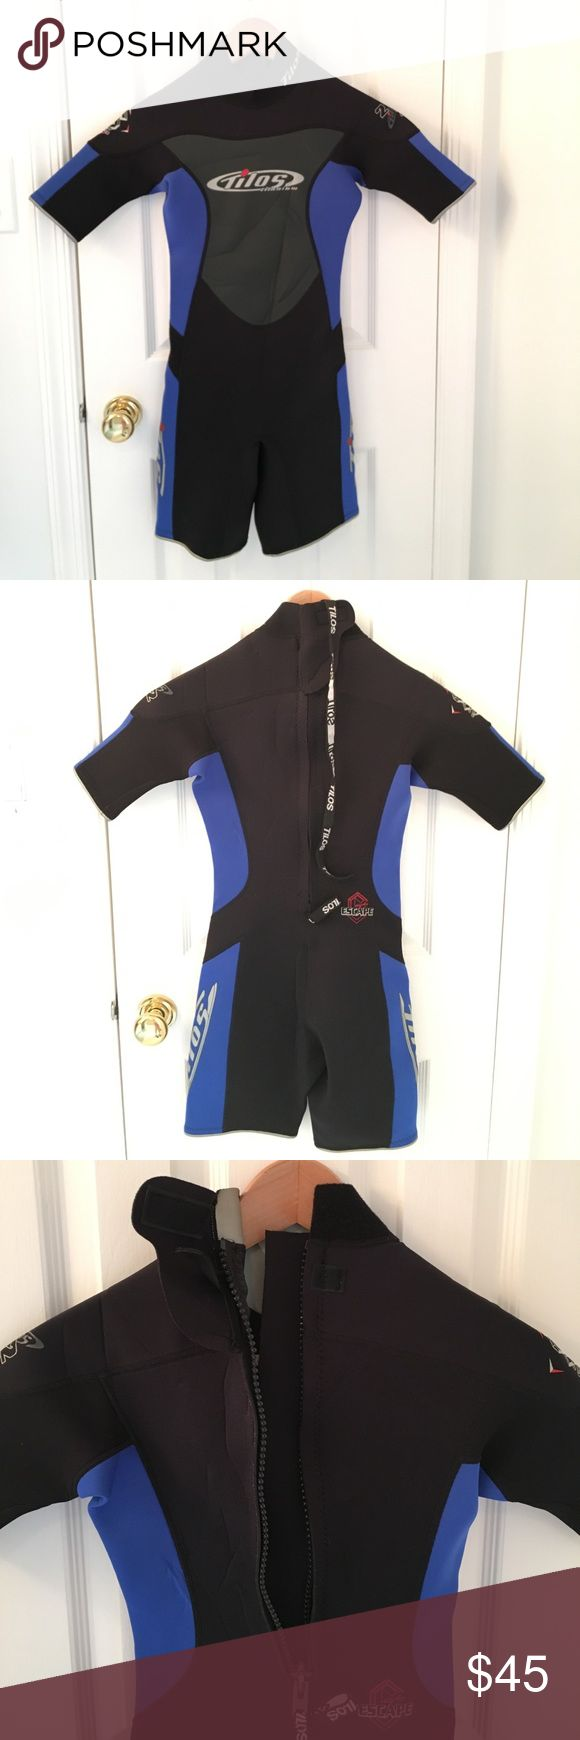 XS Tilos Wetsuit from Italy -- Short Worn only once at cenotes in Mexico, this is an Italian wetsuit, purchased New from a dive shop in Midtown Manhattan. There are some creases (see photos) from being stored folded on a shelf. EUC. It would fit a size xsmall or dress size 0. Tilos Other